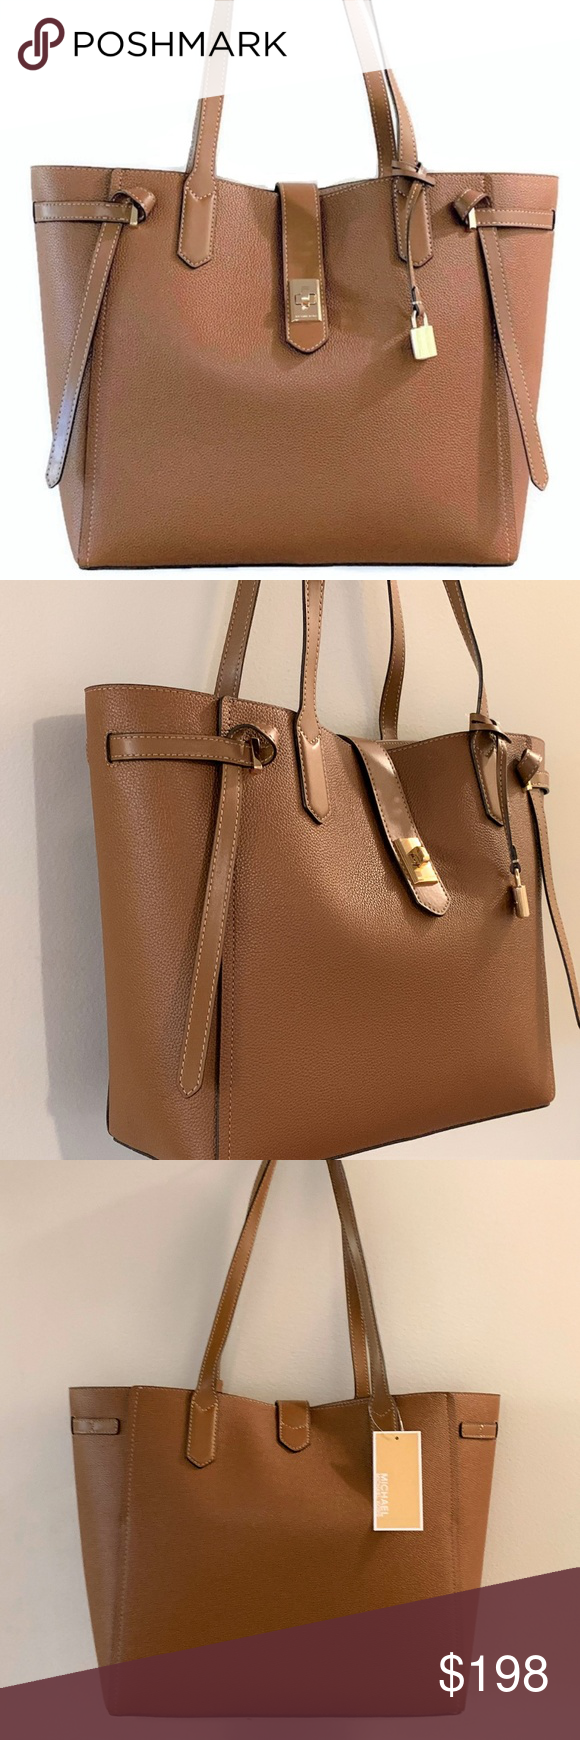 3a9c65727270 Michael Kors Cassie Large Leather Tote~ Brown NWT Michael Kors Large Cassie  Tote - Luggage